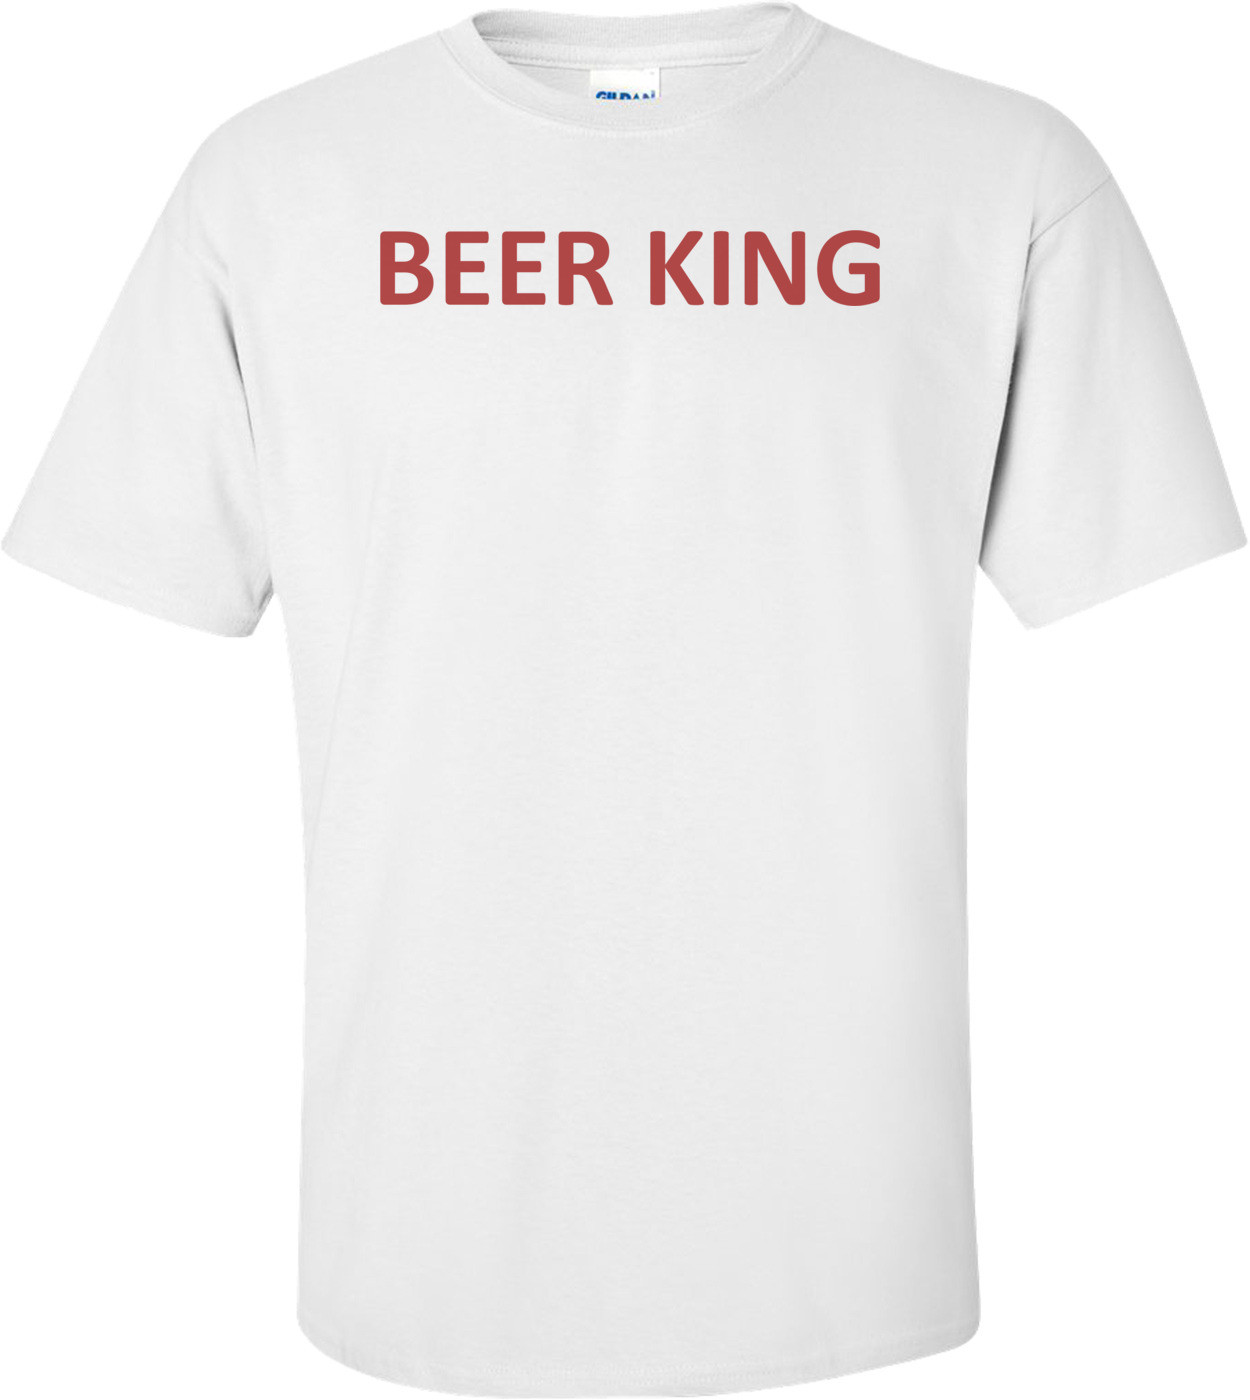 BEER KING Shirt